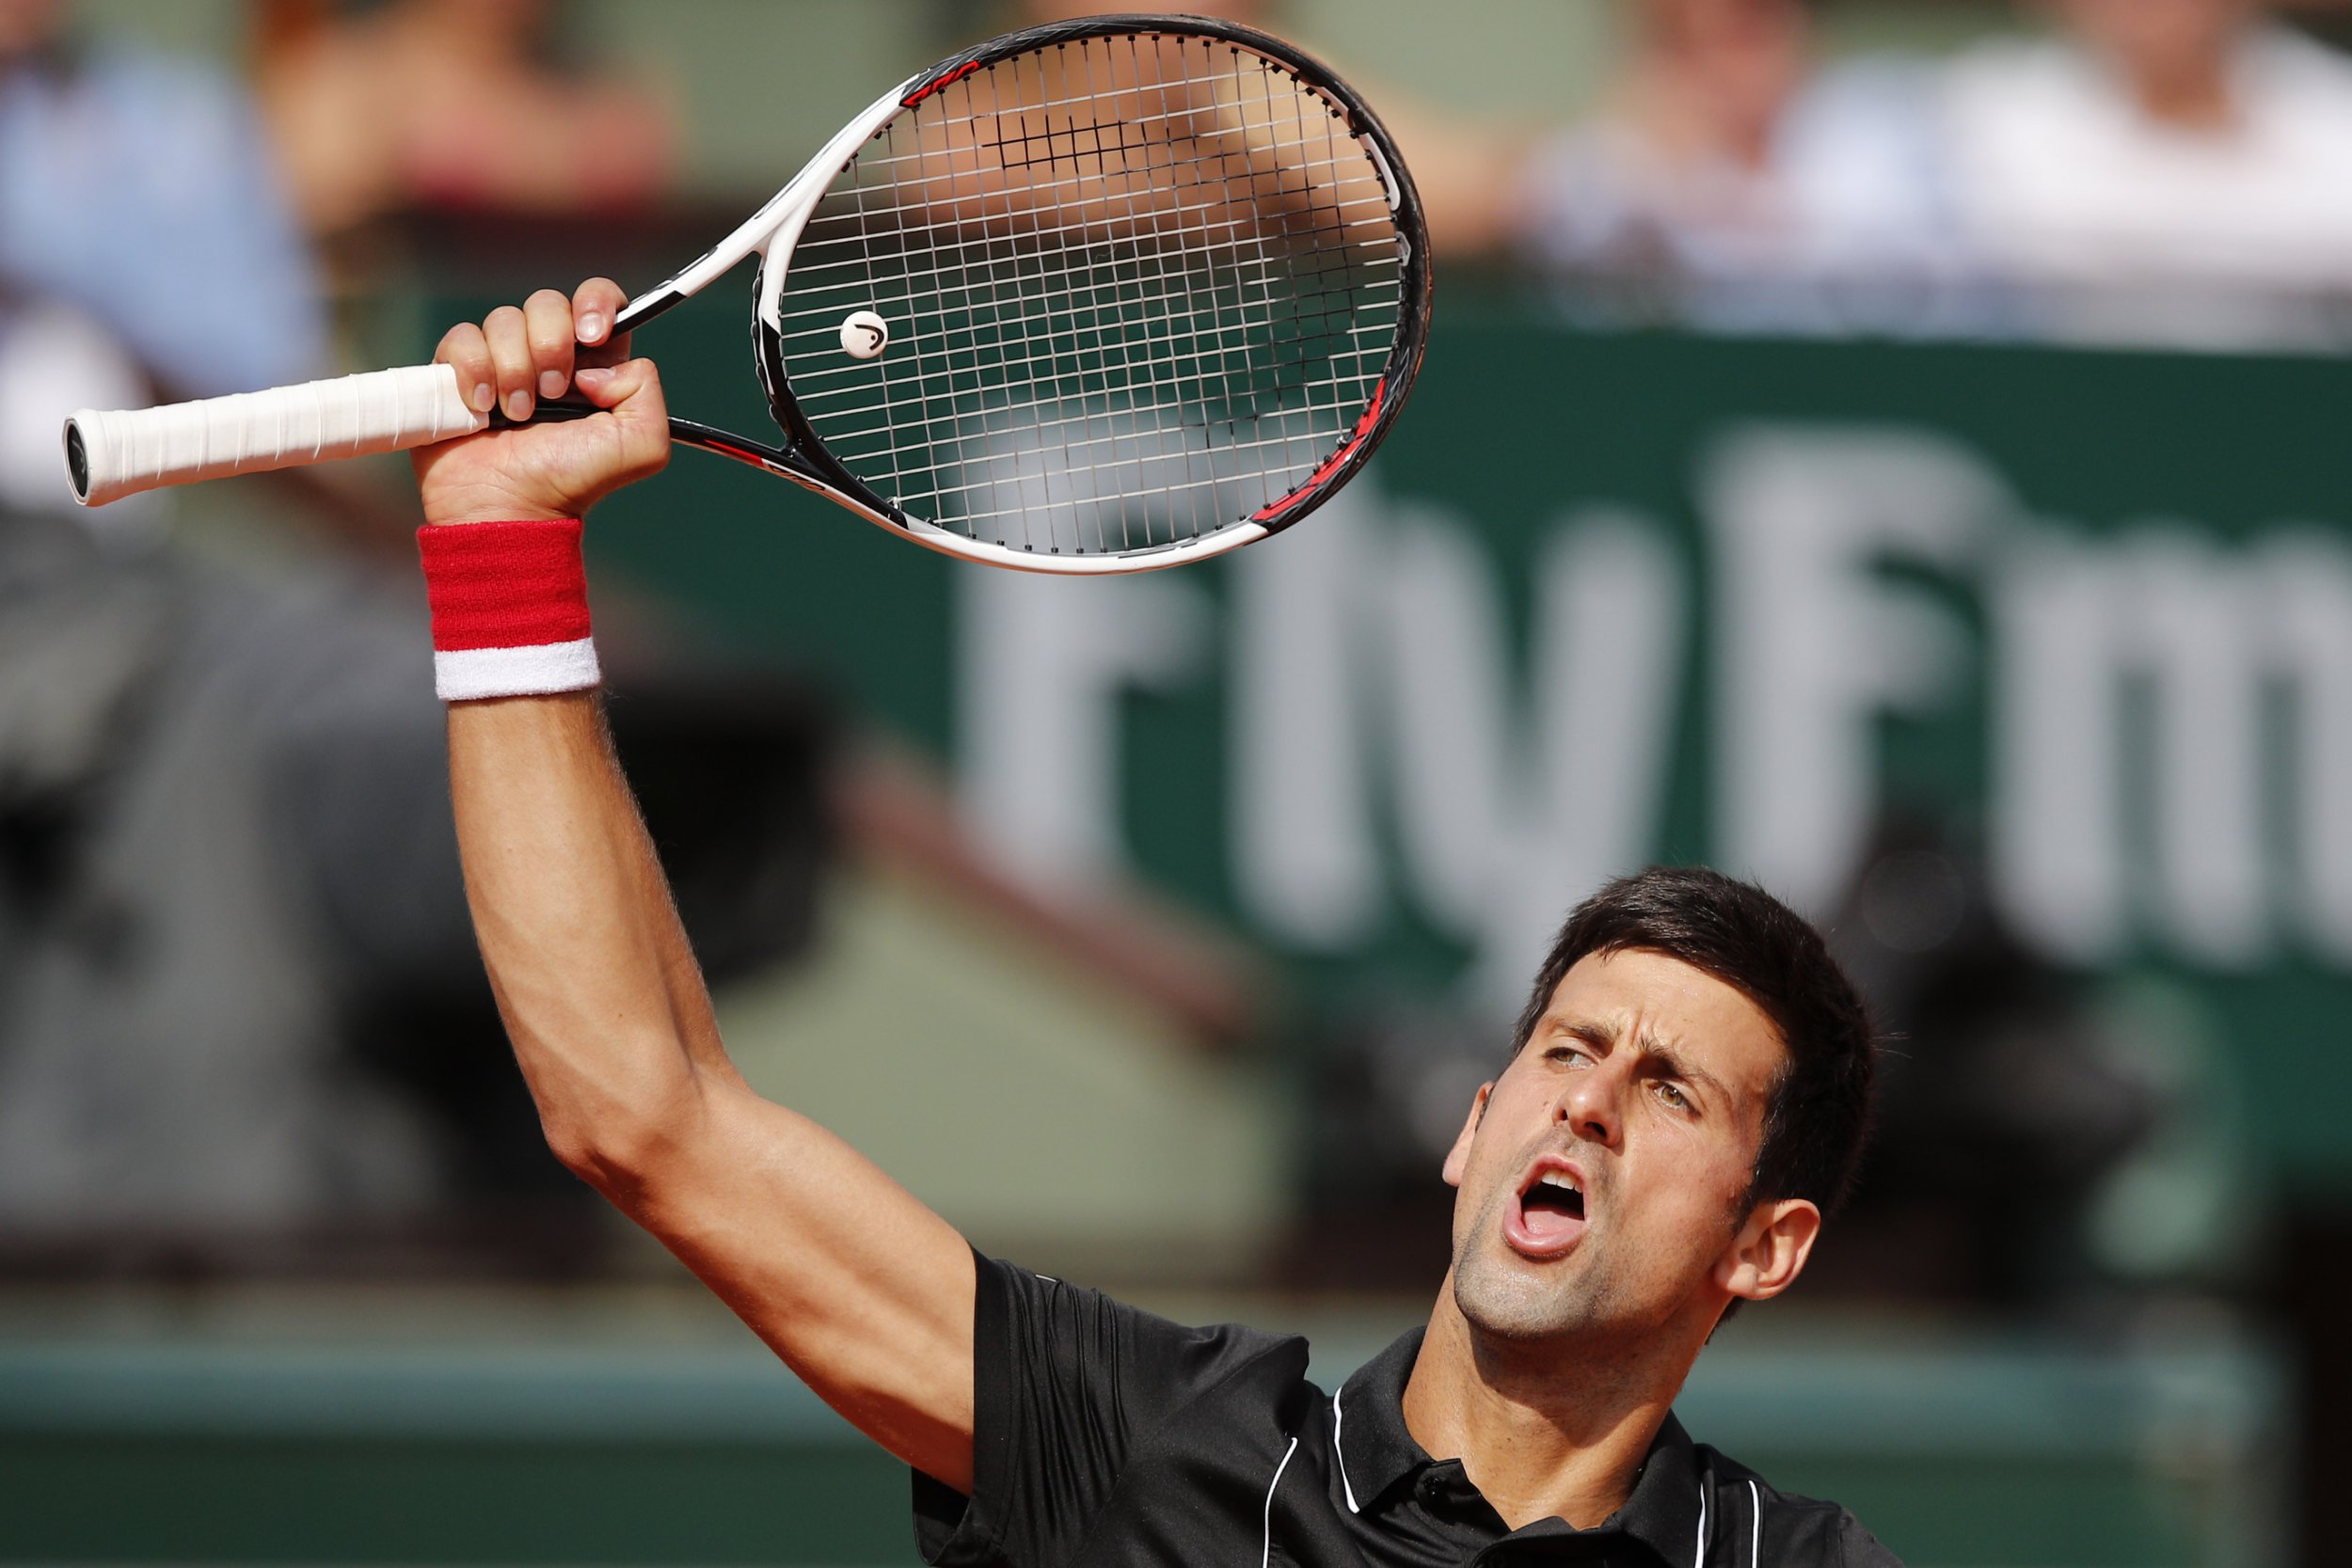 Serbia's Novak Djokovic raises his arm as he plays Spain's Fernando Verdasco during their fourth round match of the French Open tennis tournament at the Roland Garros stadium, Sunday, June 3, 2018 in Paris. (AP Photo/Christophe Ena)